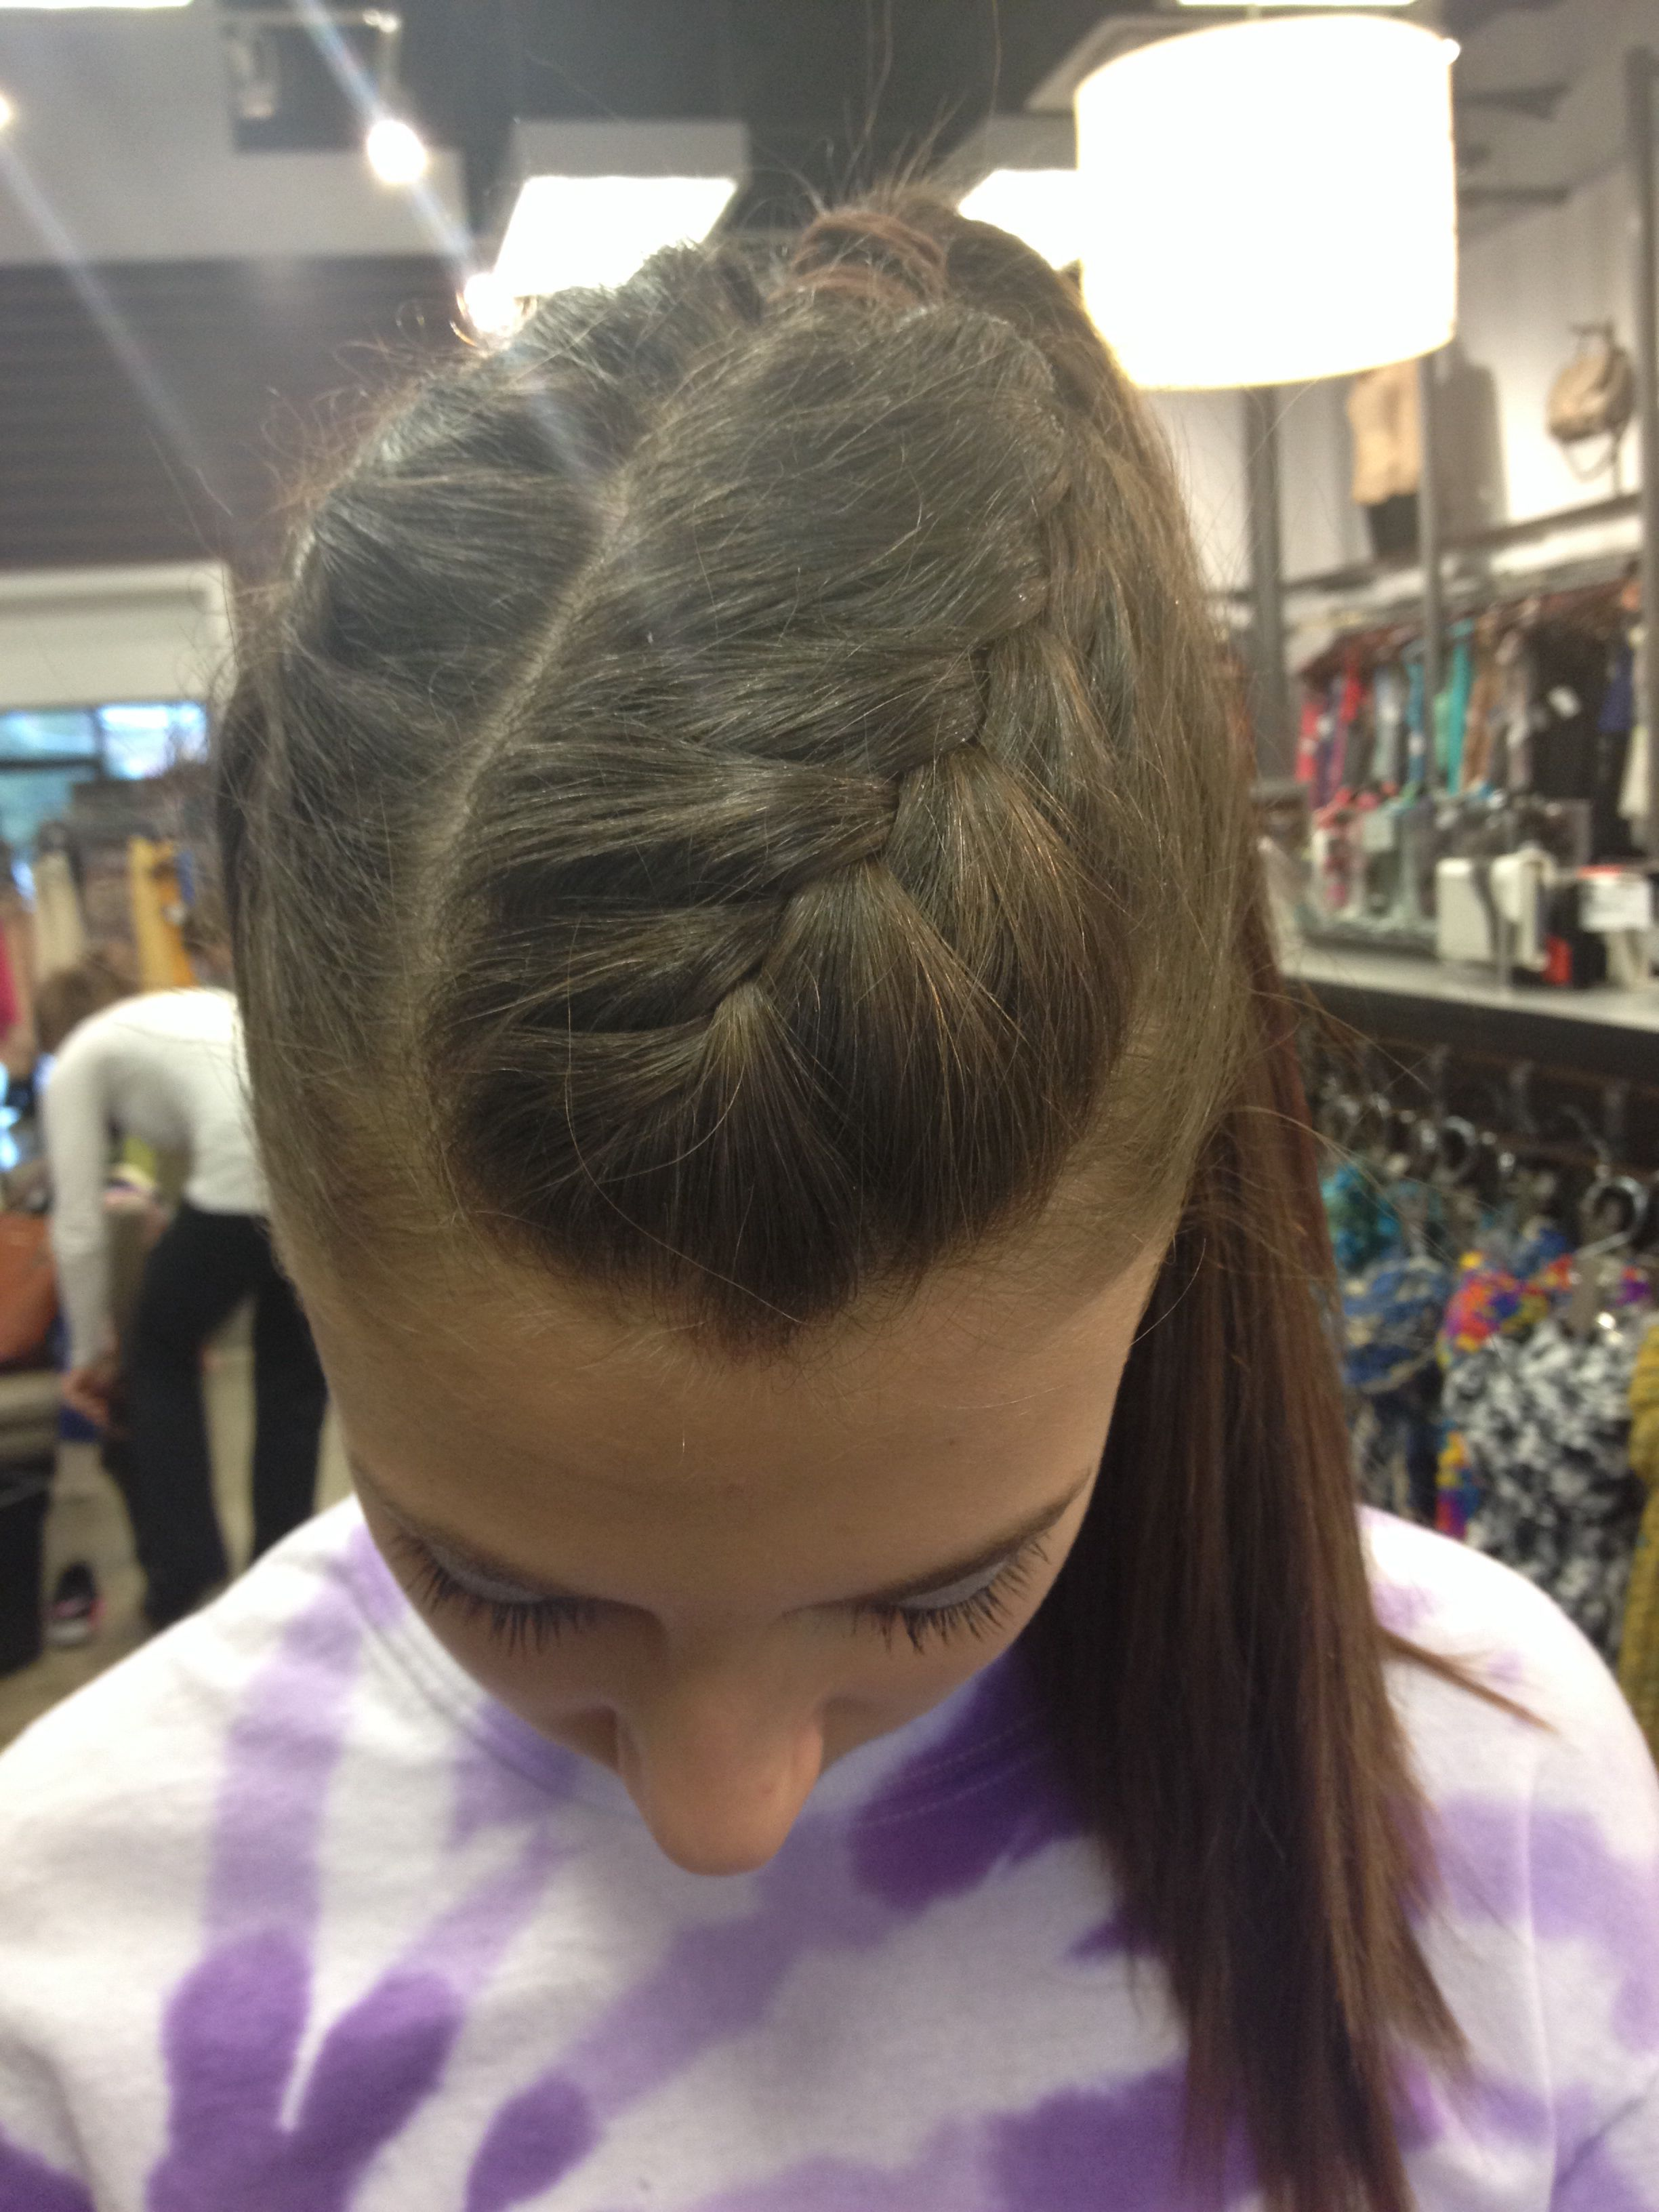 Cheer Hair Braided On 2 Sides With High Ponytail